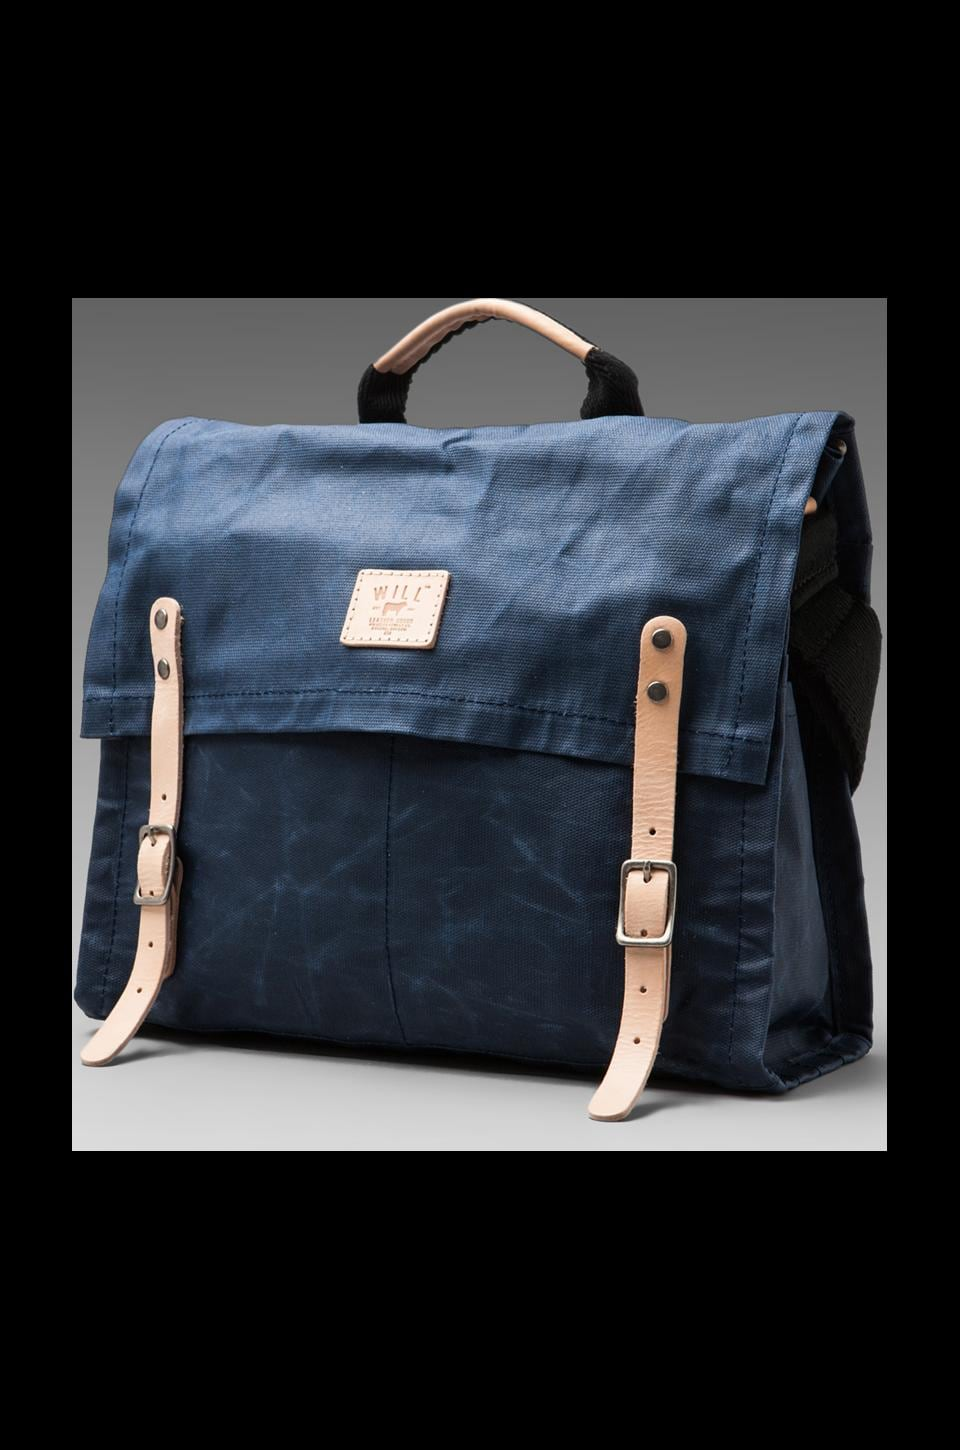 WILL Leather Goods Wax Coated Canvas Messenger in Blue